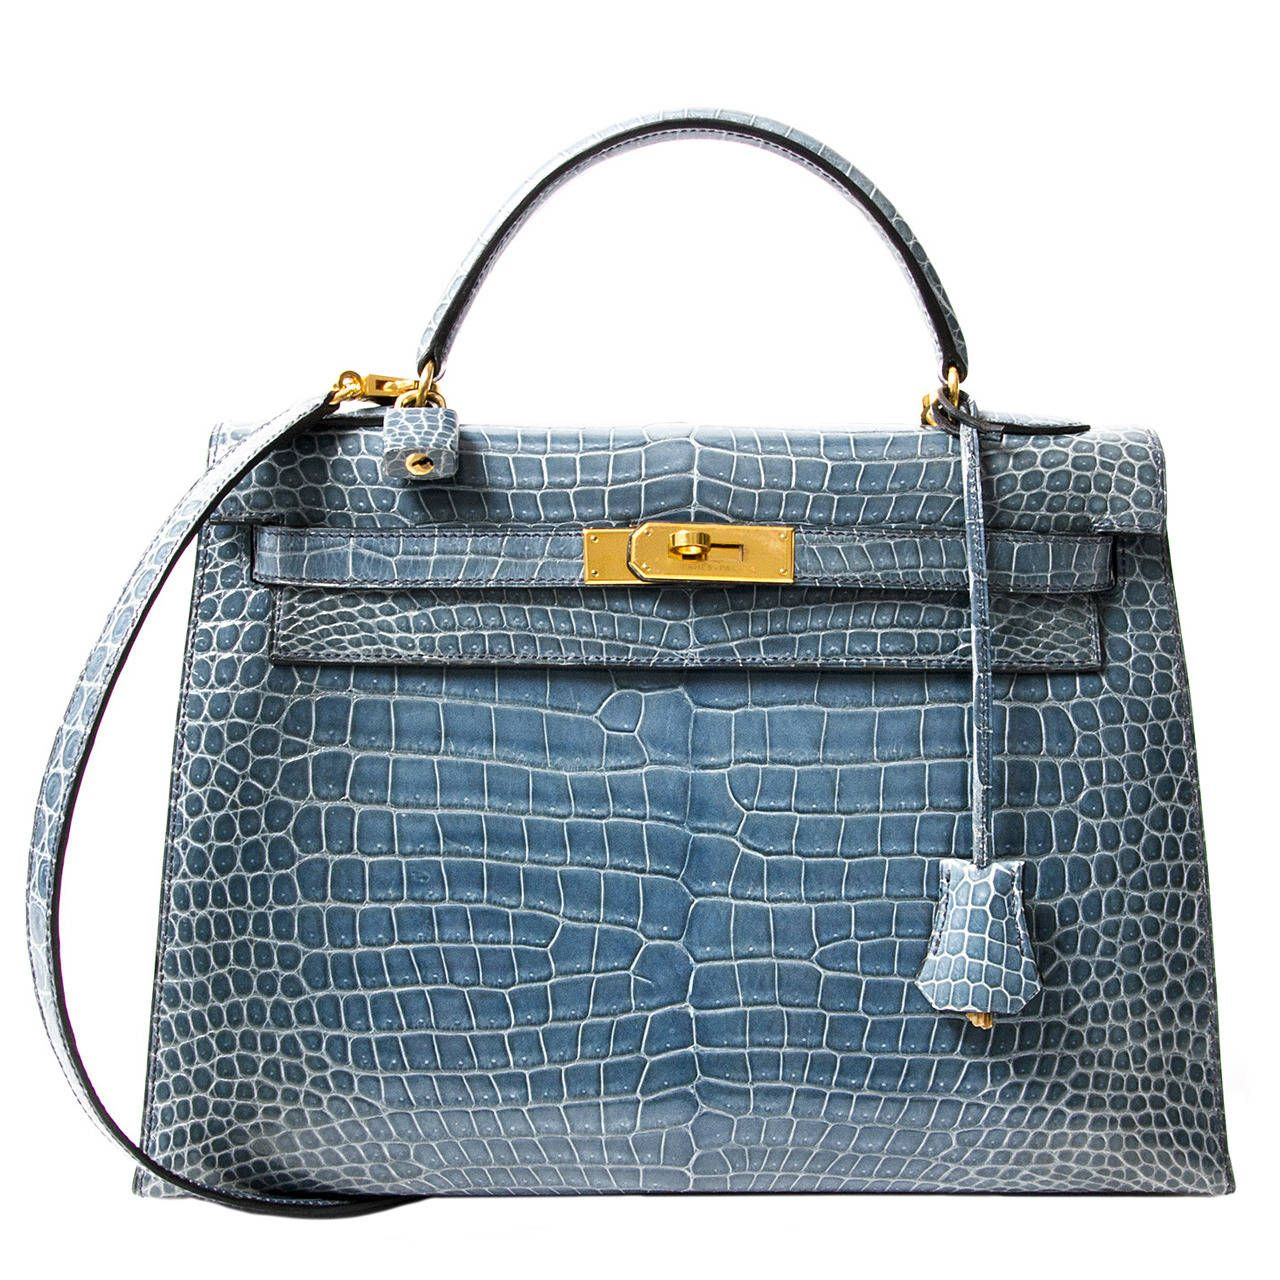 Rare Hermes Blue Jean P Orosus Crocodile 32 Kelly Ghw Very Nice But No Way Would I Pay The Price Tag On This One 47850